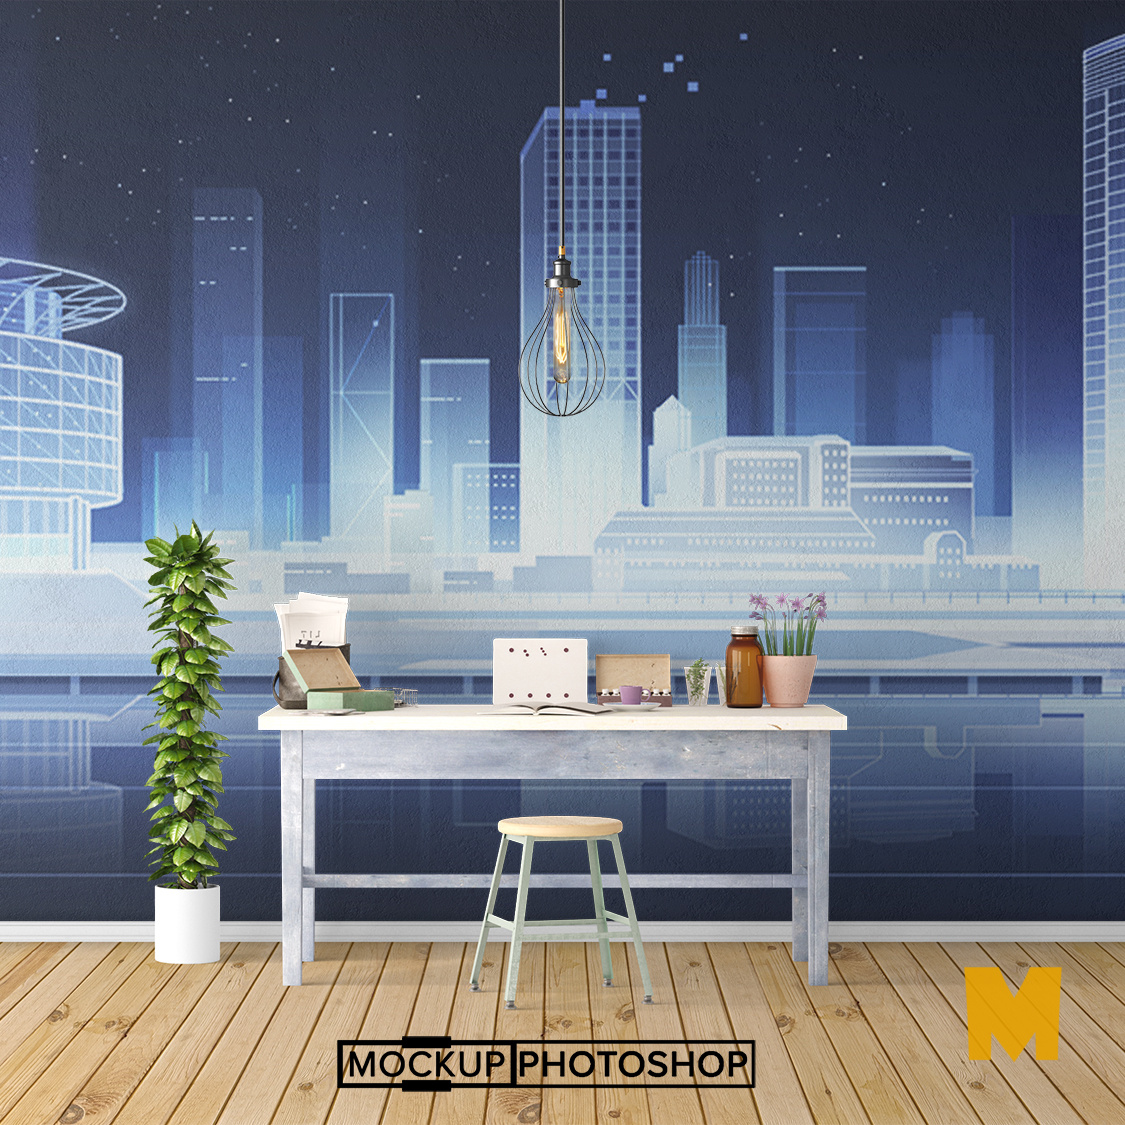 Free Wall Sticker Mockup